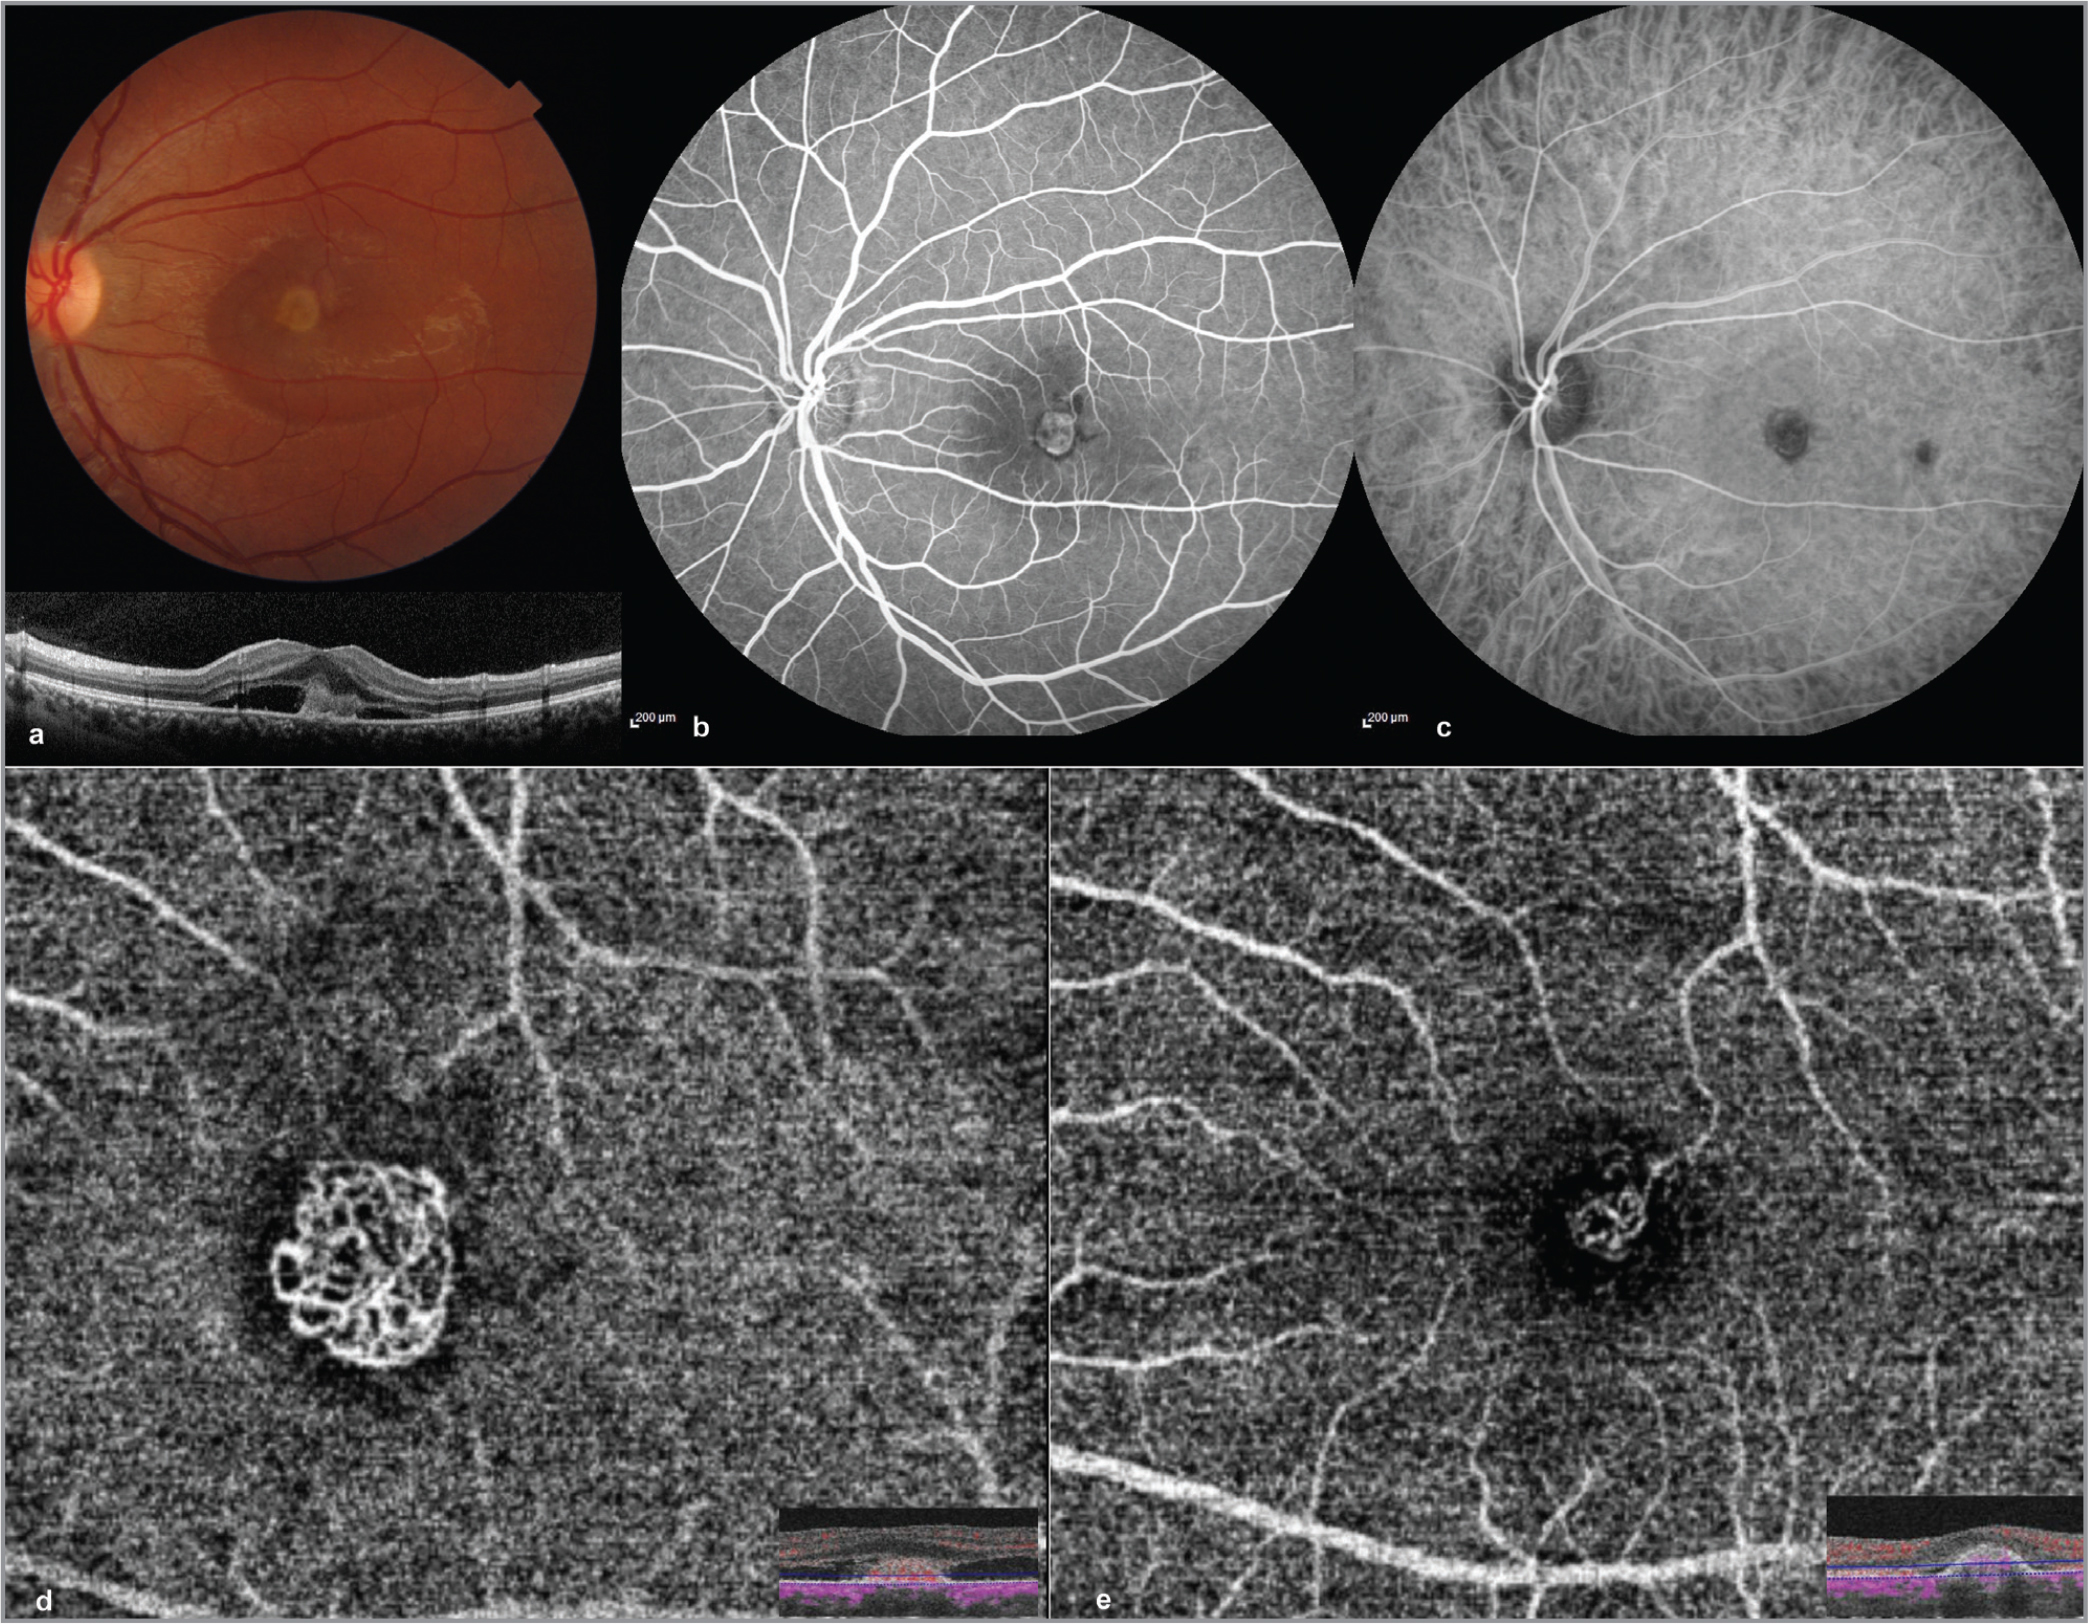 "(a) (Top) Fundus photograph of Patient 2 showing a cream-colored oval lesion at the macula with surrounding subretinal fluid, with an optical coherence tomography (OCT) scan (bottom) through the fovea showing a hyperintense reflective area in the outer retina at the fovea with subretinal fluid. (b) Fluorescein angiography image showing hyperfluorescence within the area of the suspected choroidal neovascularization (CNV). (c) Indocyanine green angiography (ICGA) showing an oval hypercyanescent area at the fovea surrounded by a hypocyanescent halo. Few individual vessels of the CNV can be identified on ICGA. (d) OCT angiography (OCTA) images segmented through the deep retina showing the same network of vessels more clearly at higher magnification. Inset shows the segmentation level on the OCTA B-scan image. (e) Post-treatment OCTA images showing a significant reduction in size of the lesion (> 50%), yet some of the individual vessels can still be recognized (""moderate resolution""). Inset shows the segmentation level on the OCTA B-scan image."